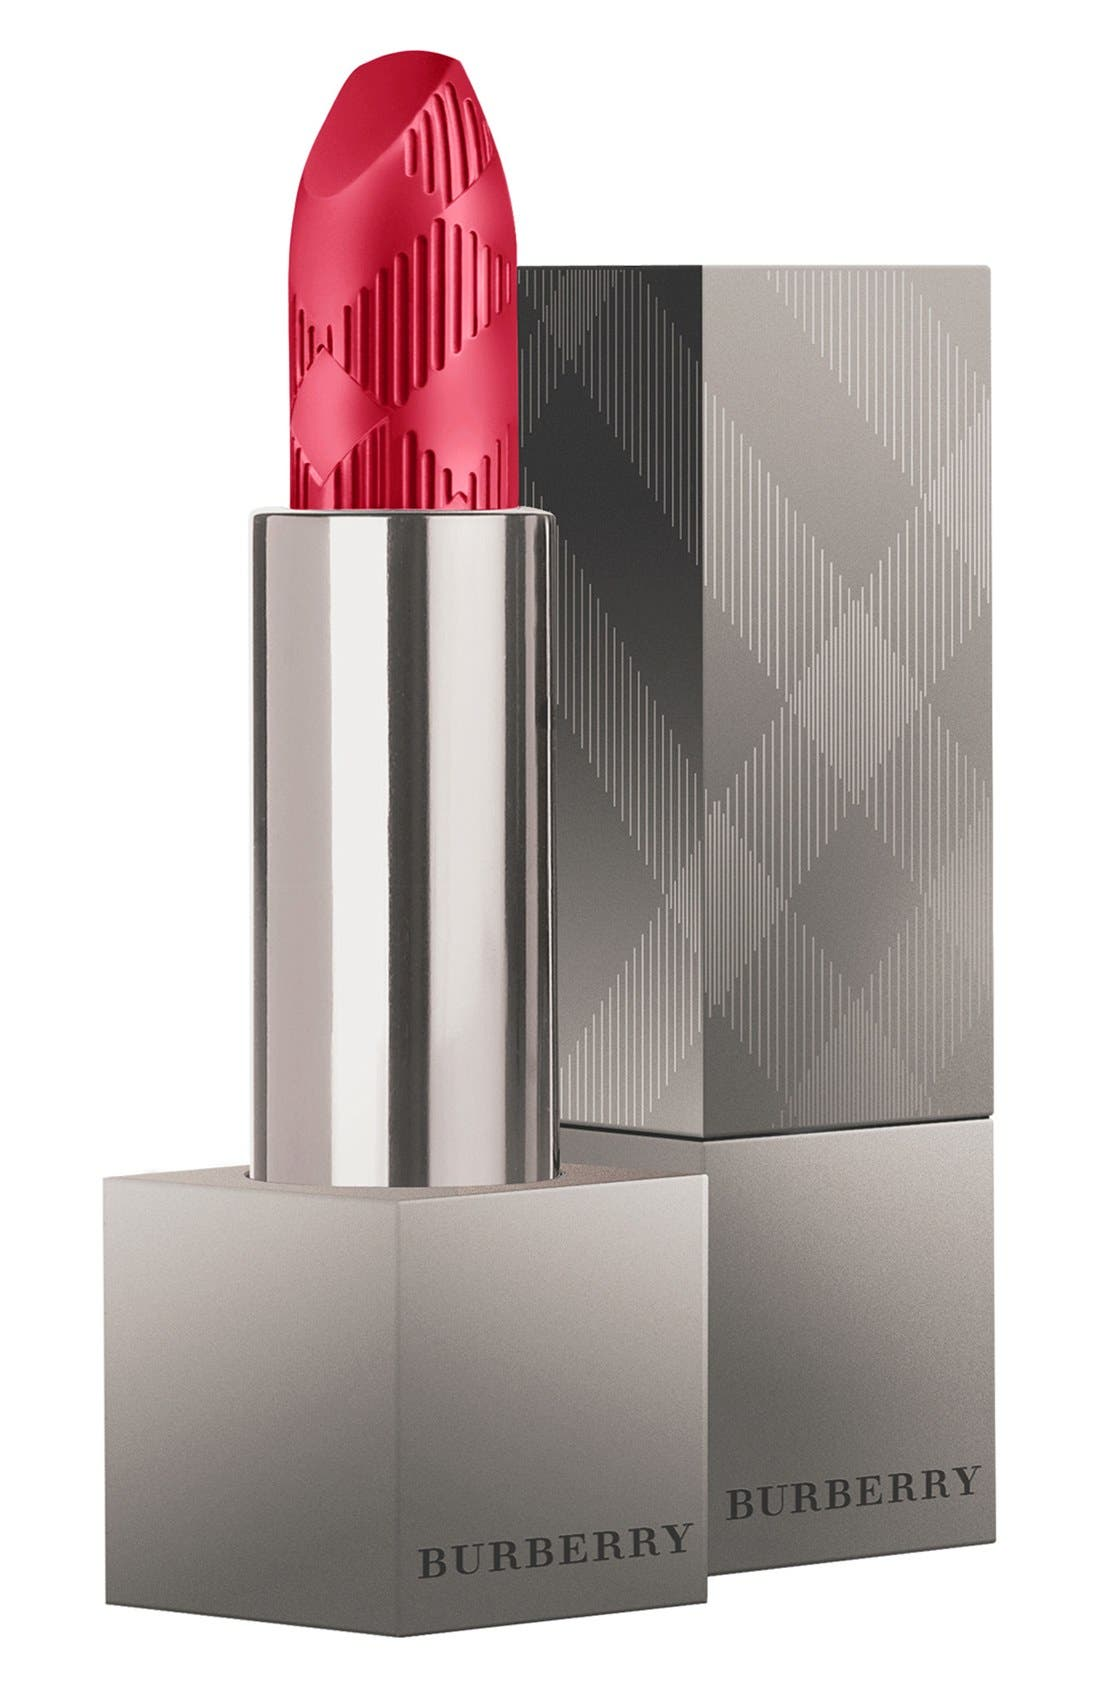 Burberry Beauty Lip Velvet Matte Lipstick